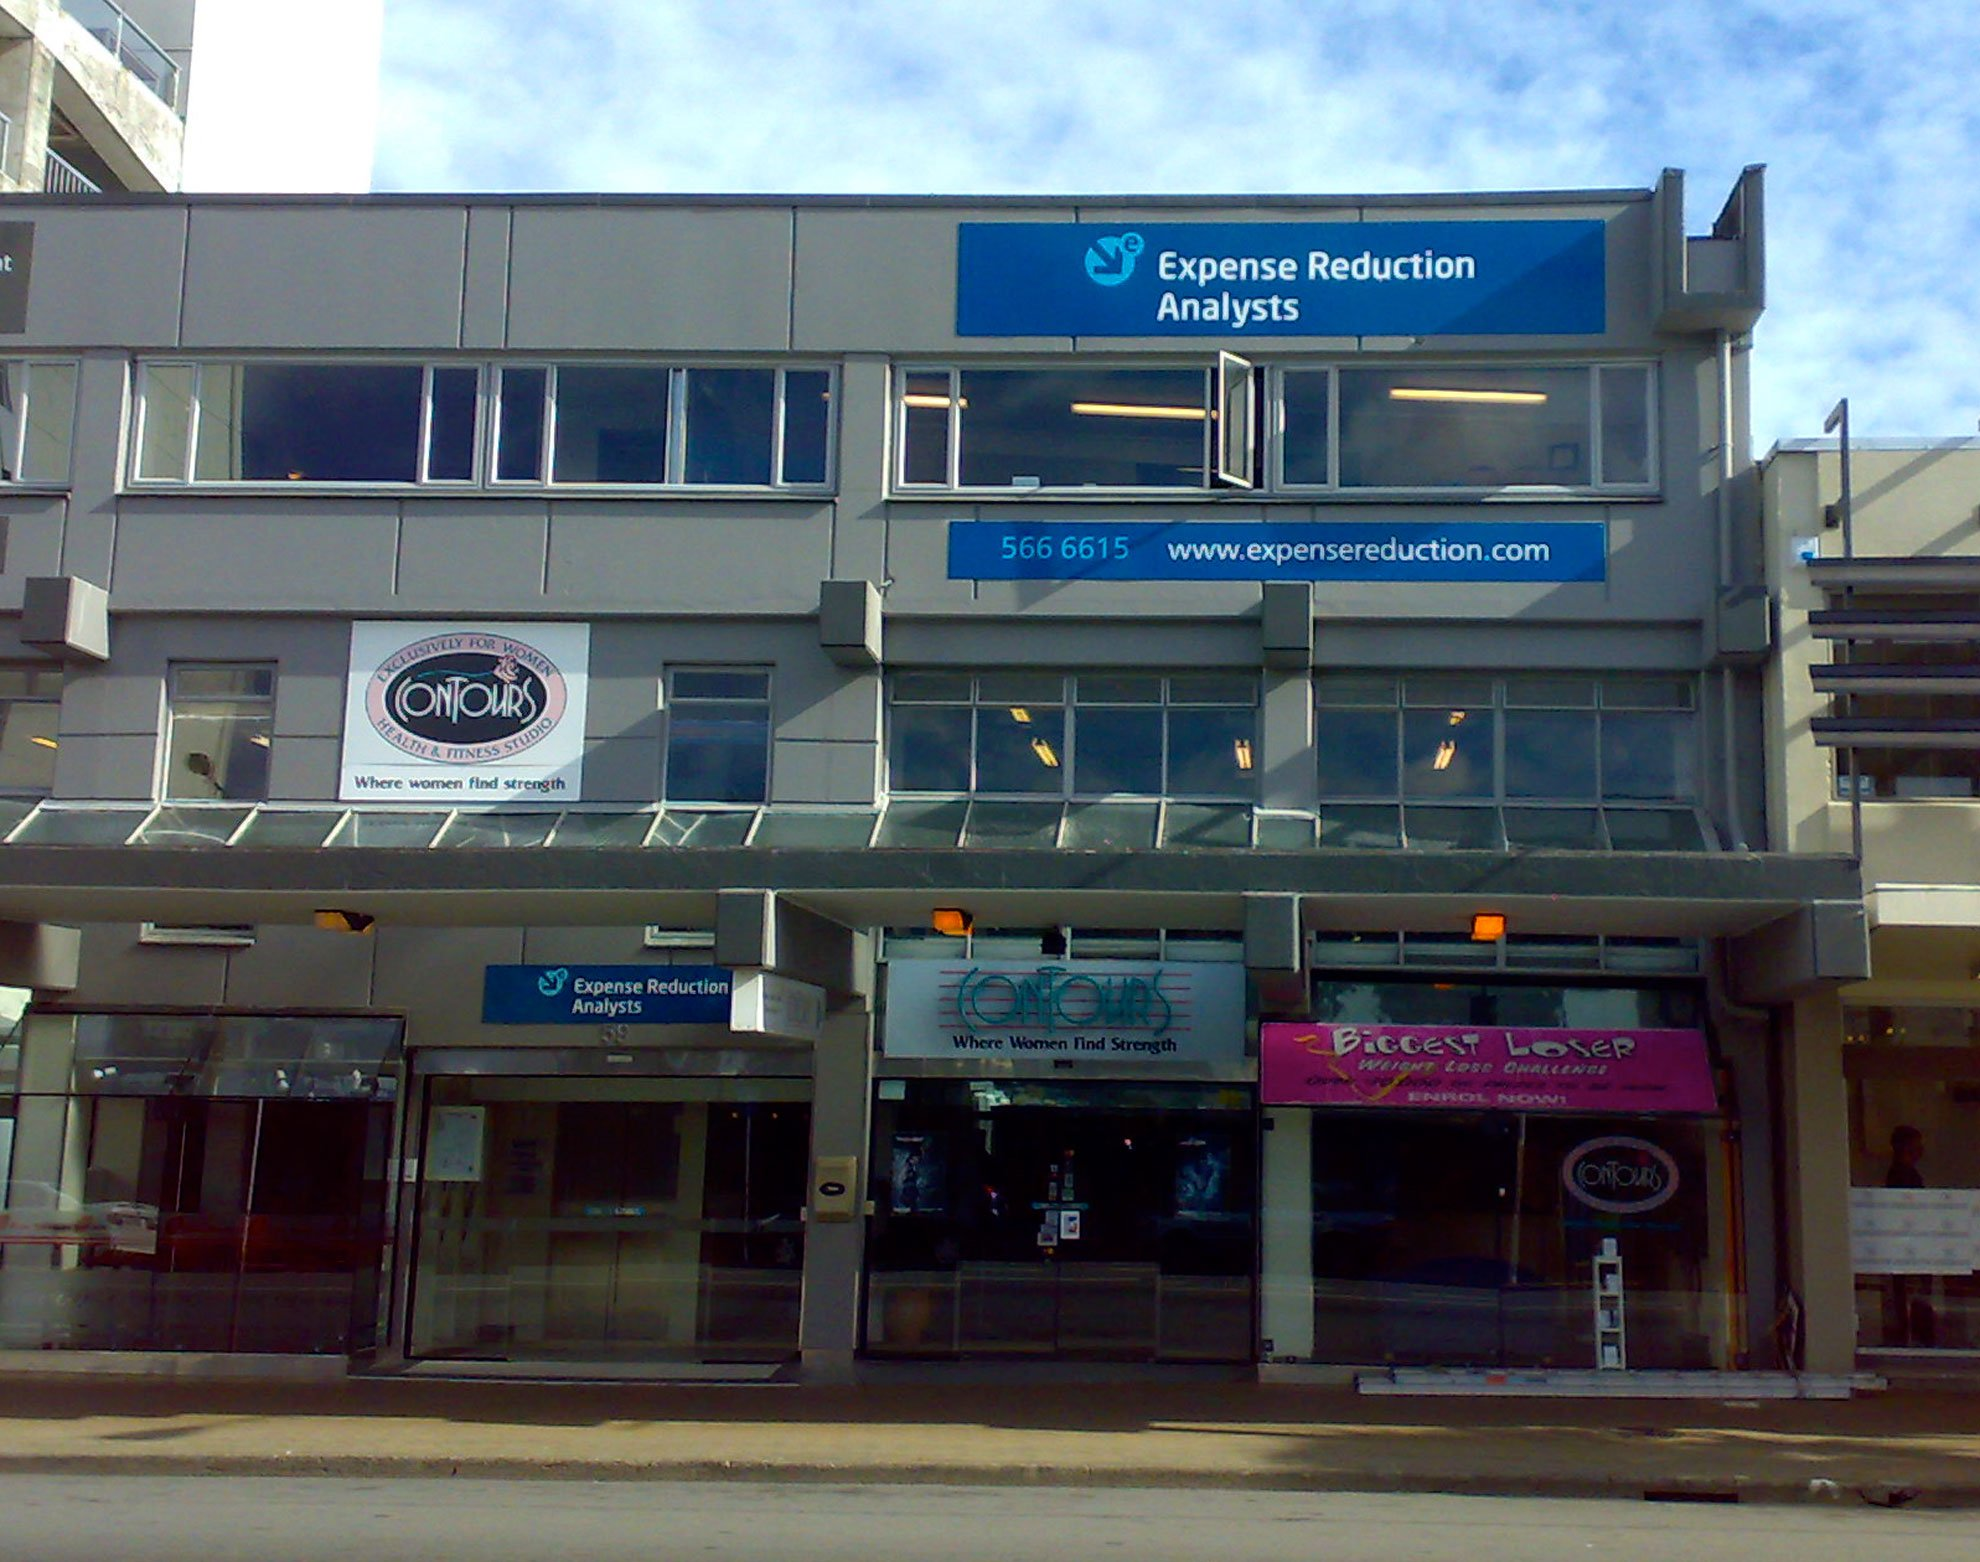 ACM signs installed onto building